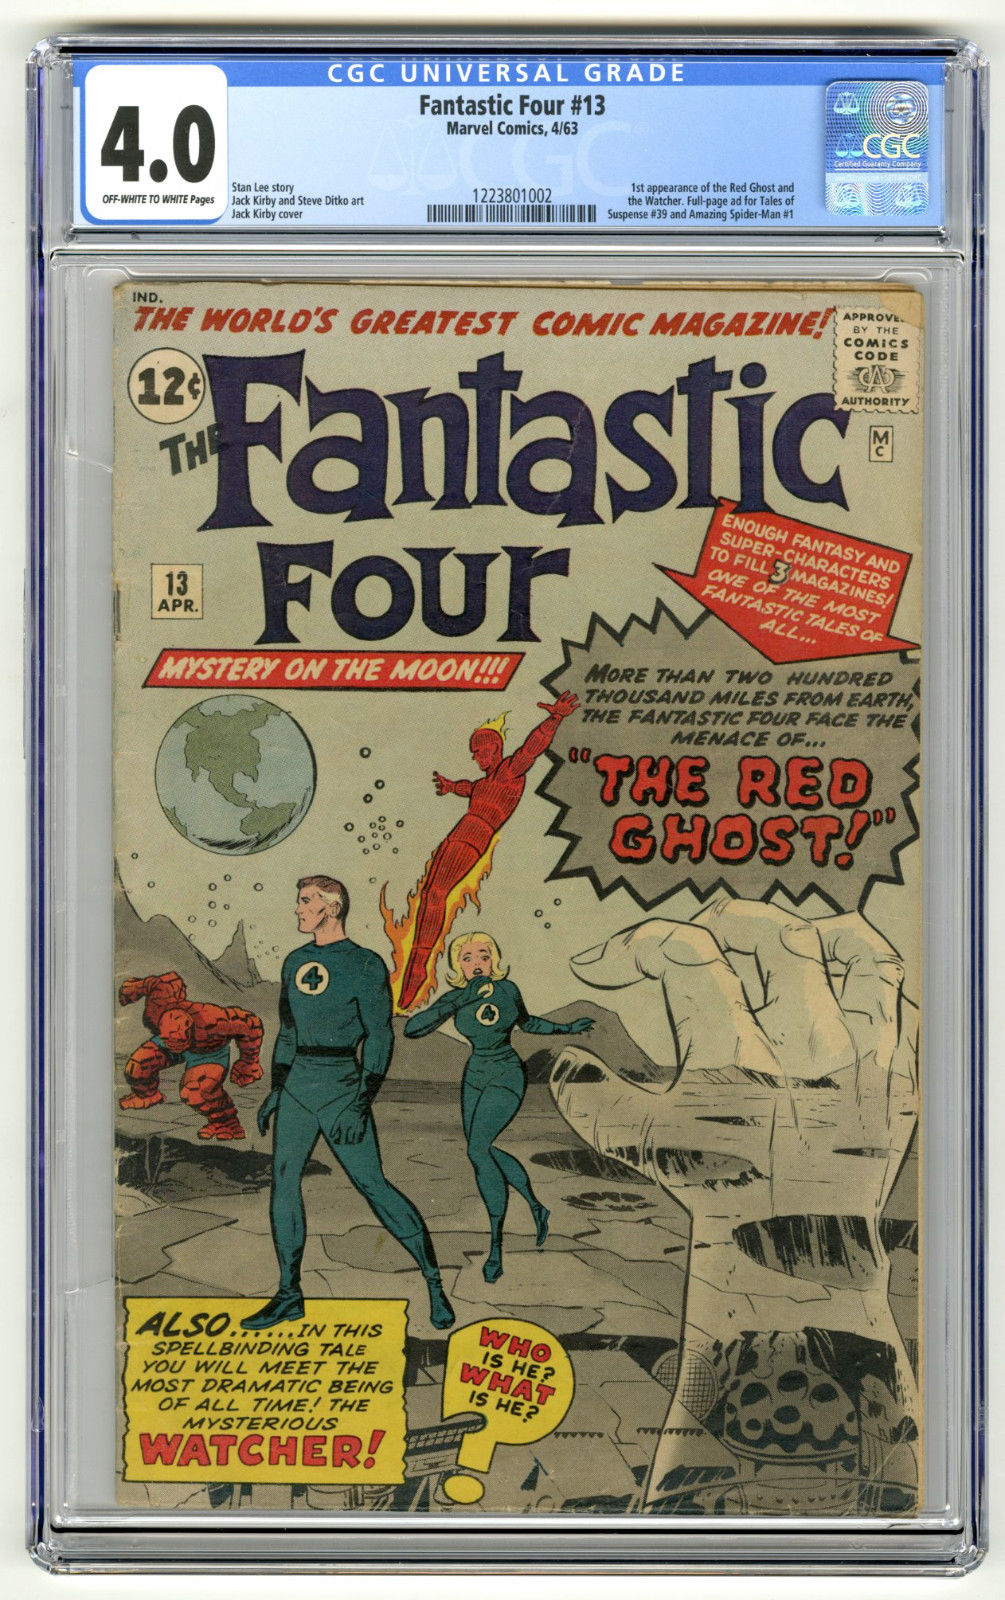 FANTASTIC FOUR #13 CGC 4.0 OW/W 1st Red Ghost & Watcher, FP Ad for TOS 39 ASM 1